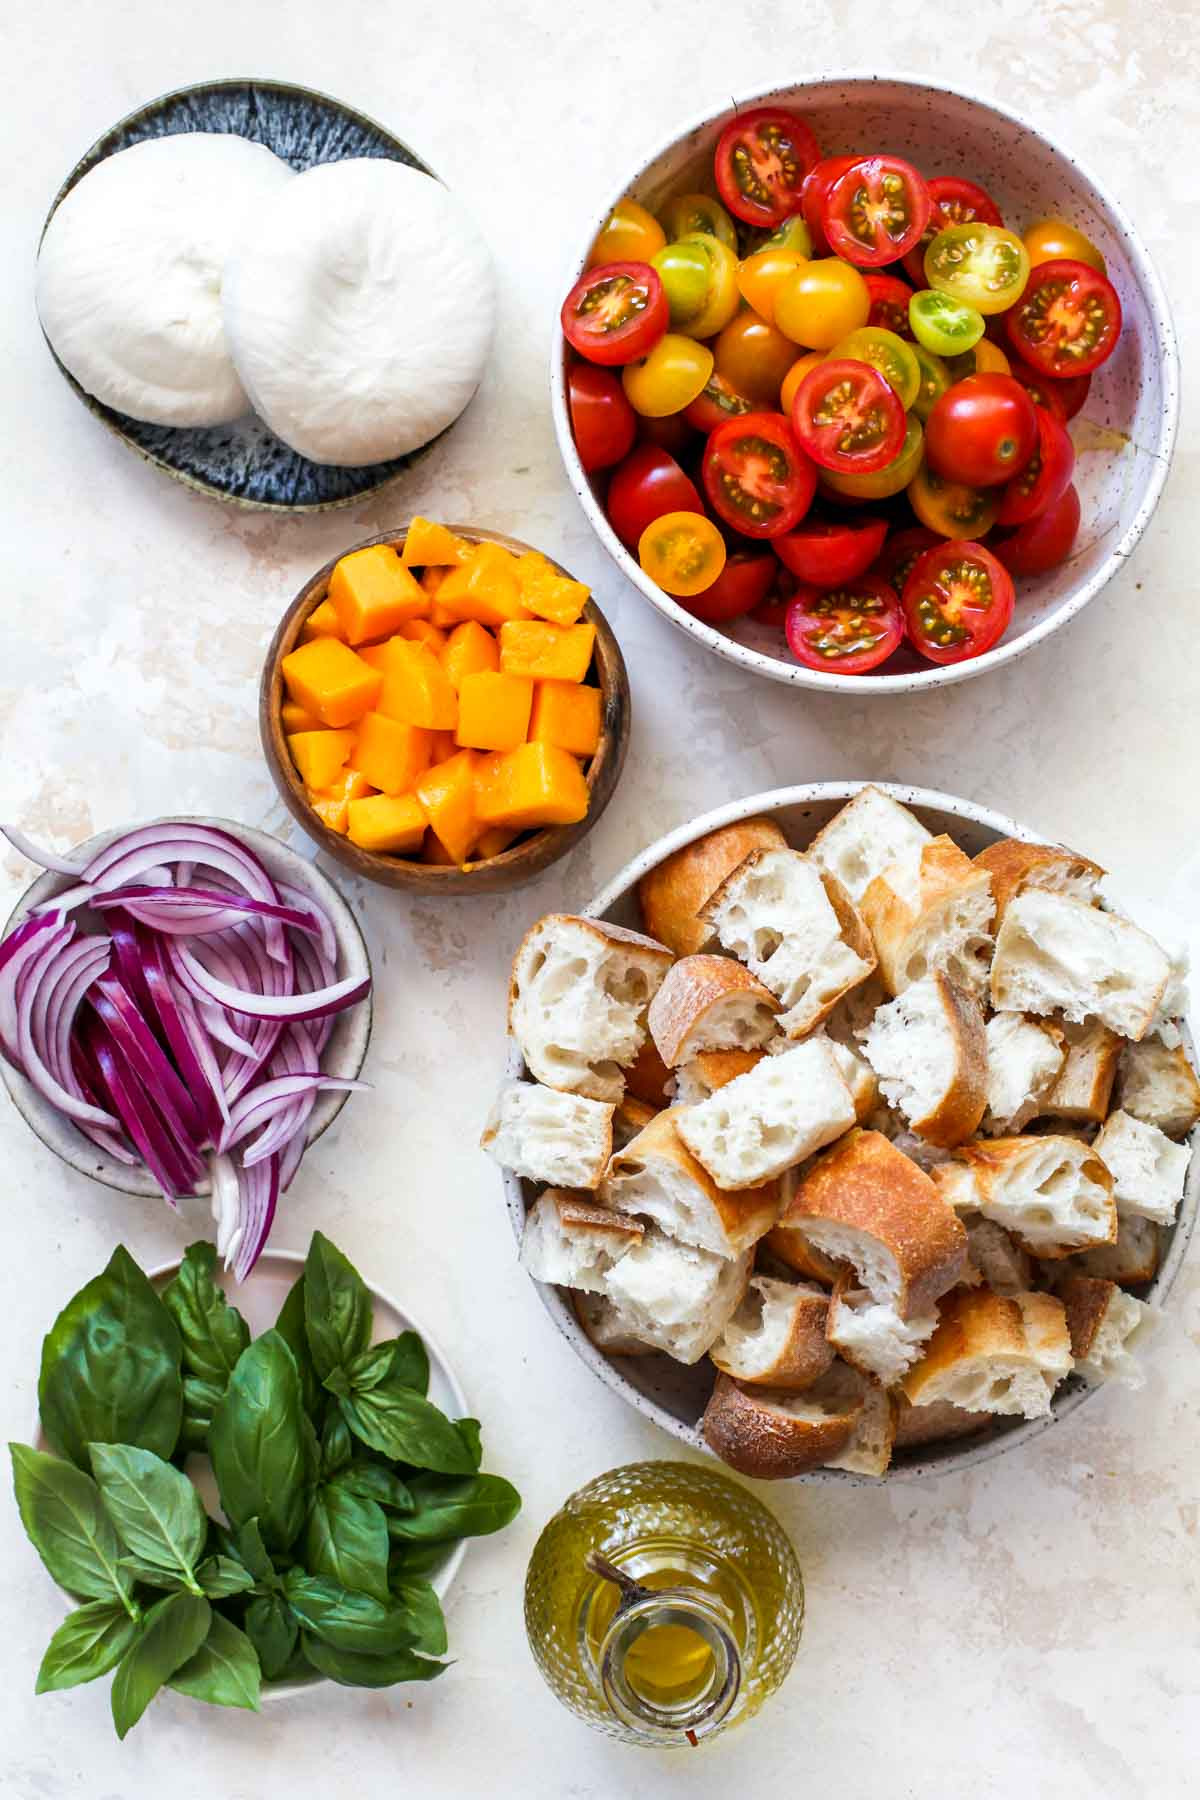 Tomatoes, bread, basil, mango, and red onion in separate bowls